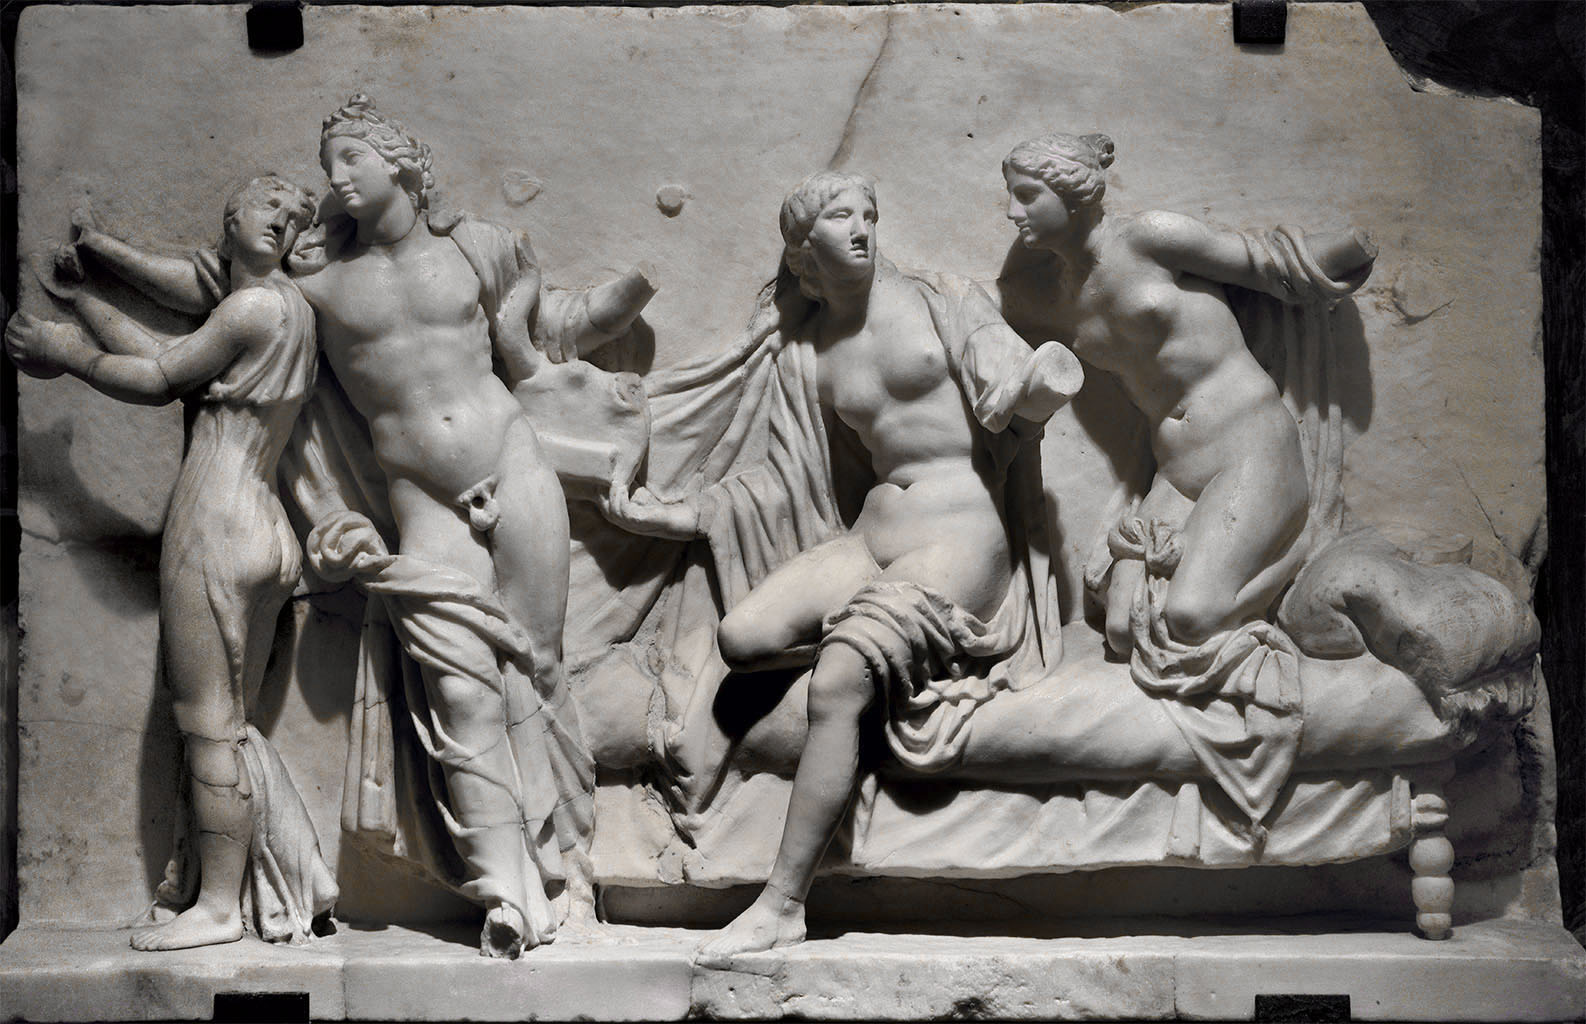 Alcibiades and hetaerae (Apollo and three nymphs). Marble. First half of the 1st cent. CE. H. 45 cm, W. 53 cm. Inv. No. 6688. Naples, National Archaeological Museum